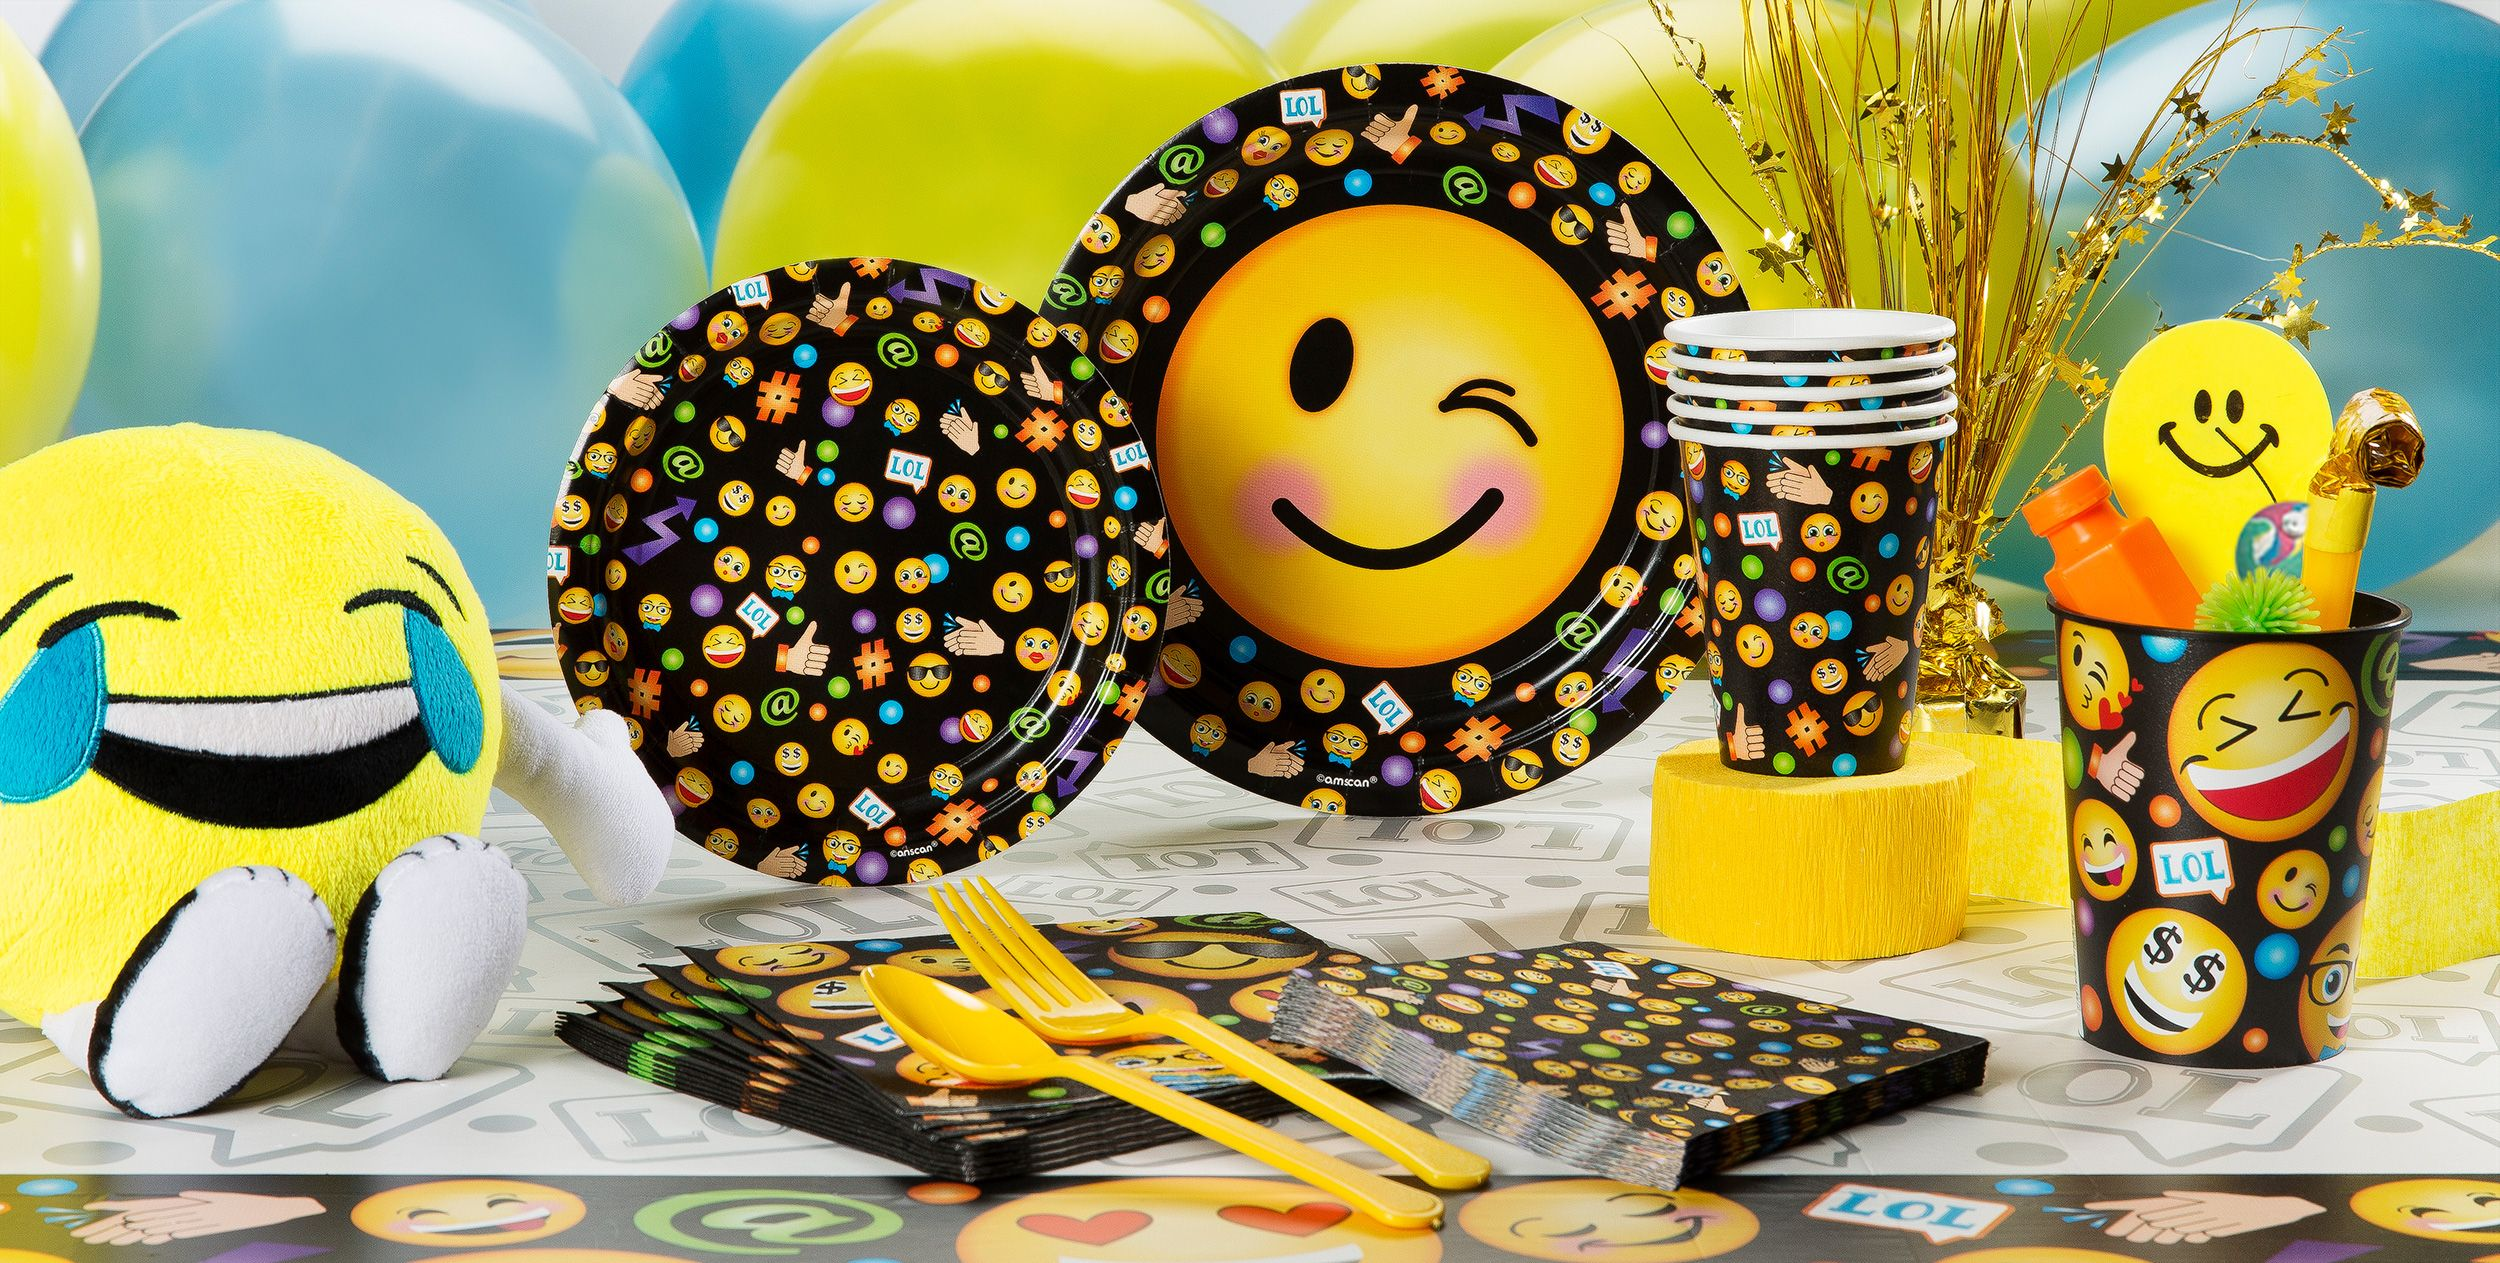 Smiley Party Supplies